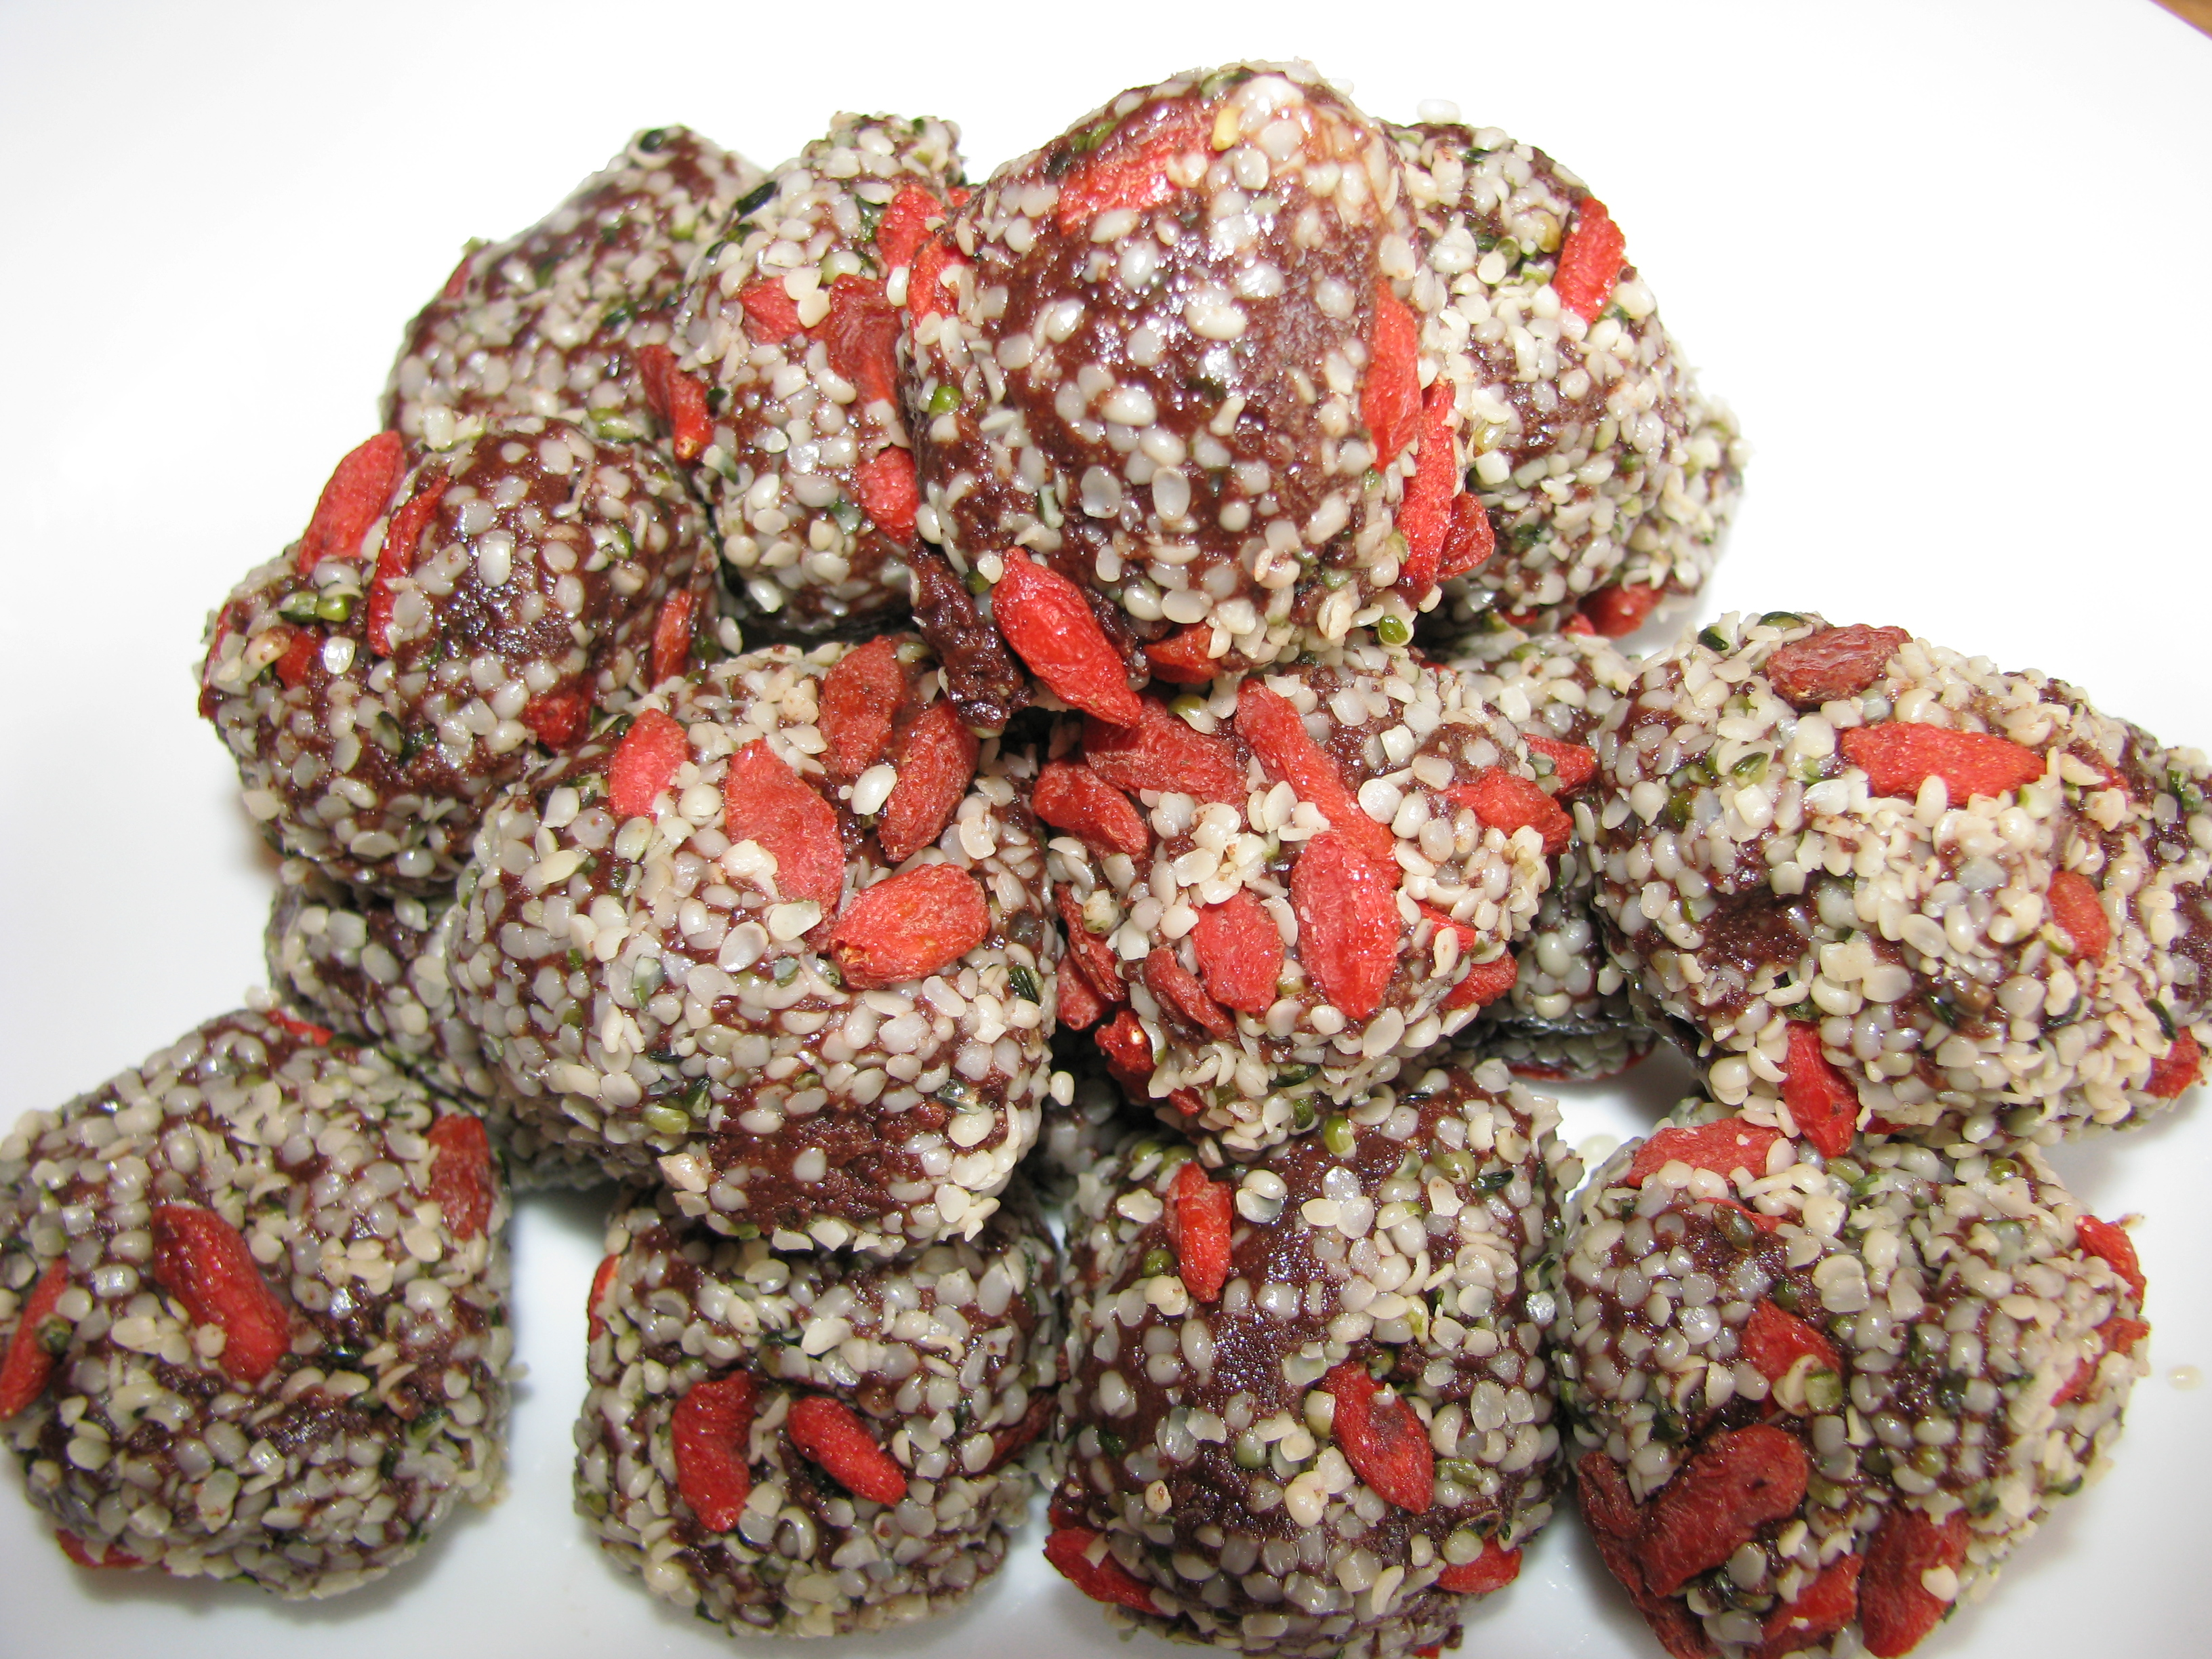 Leslie's Famous Truffles with Goji Berries